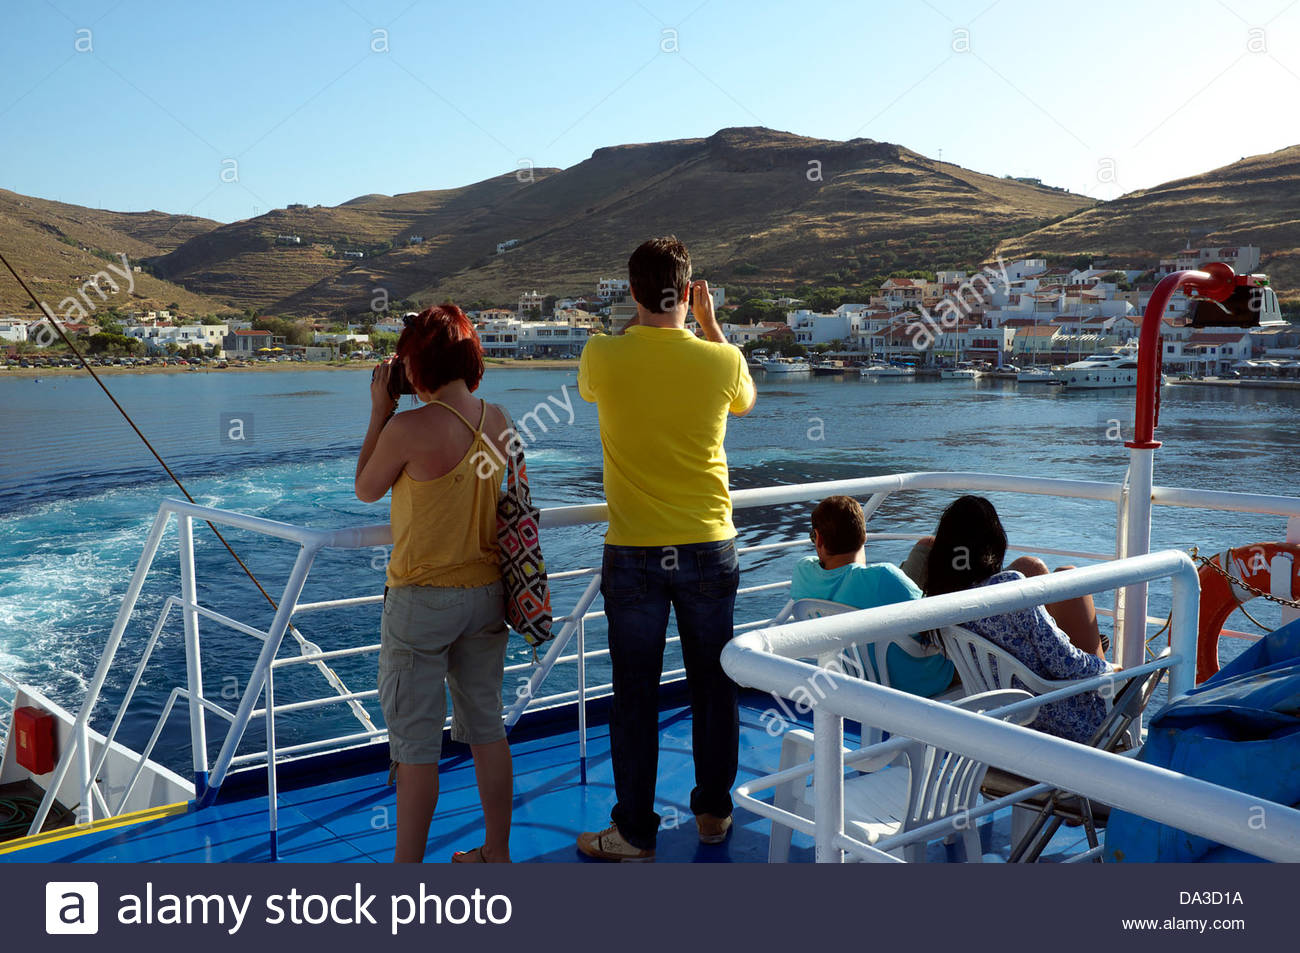 A ferry departs the port of Korissia on Kea island, bound for Lavrio on the Greek mainland. Greece. - Stock Image